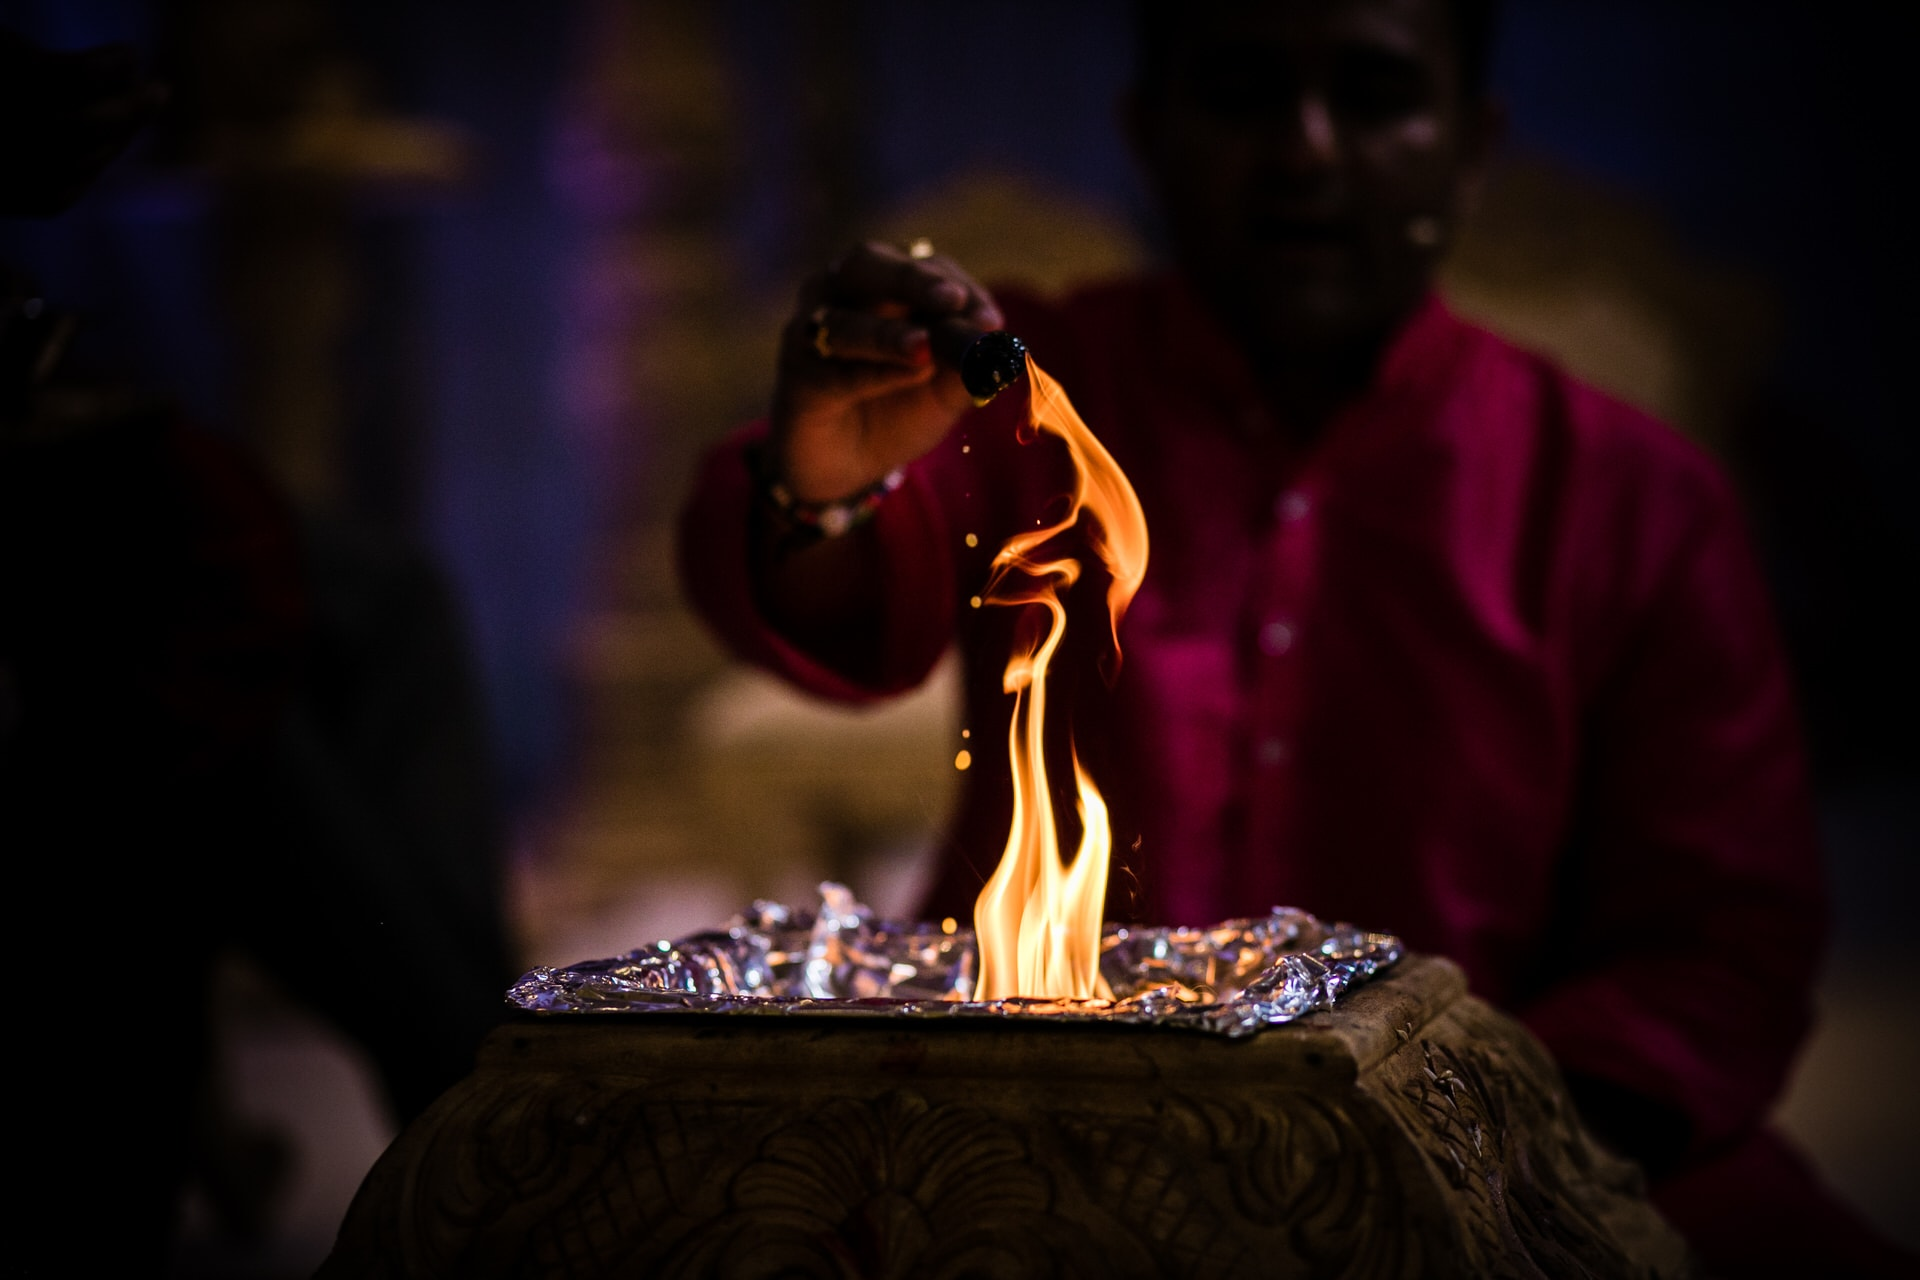 Milan Mehta pouring Ghee into the fire during Hindu Wedding ceremony